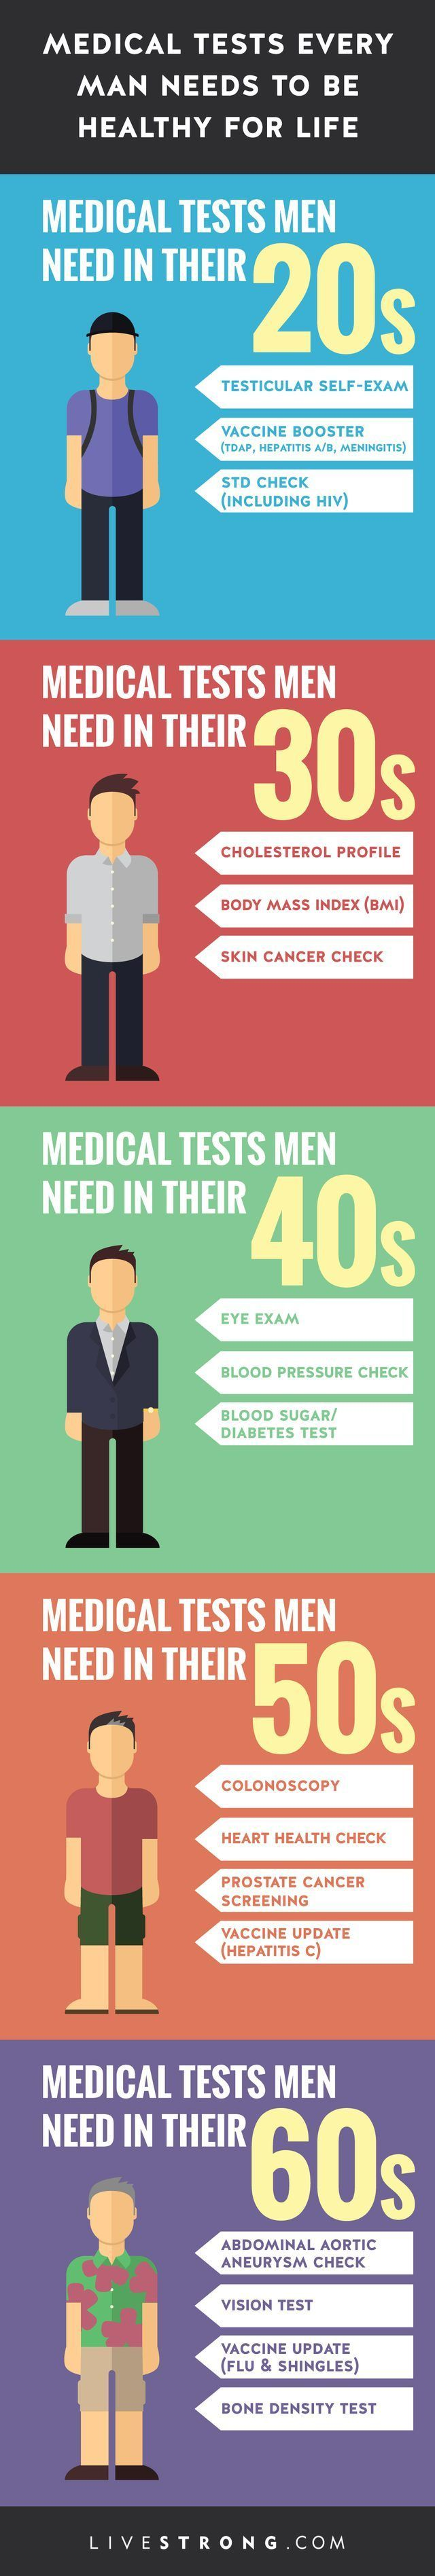 Medical Tests Every Man Needs to Be Healthy for Life